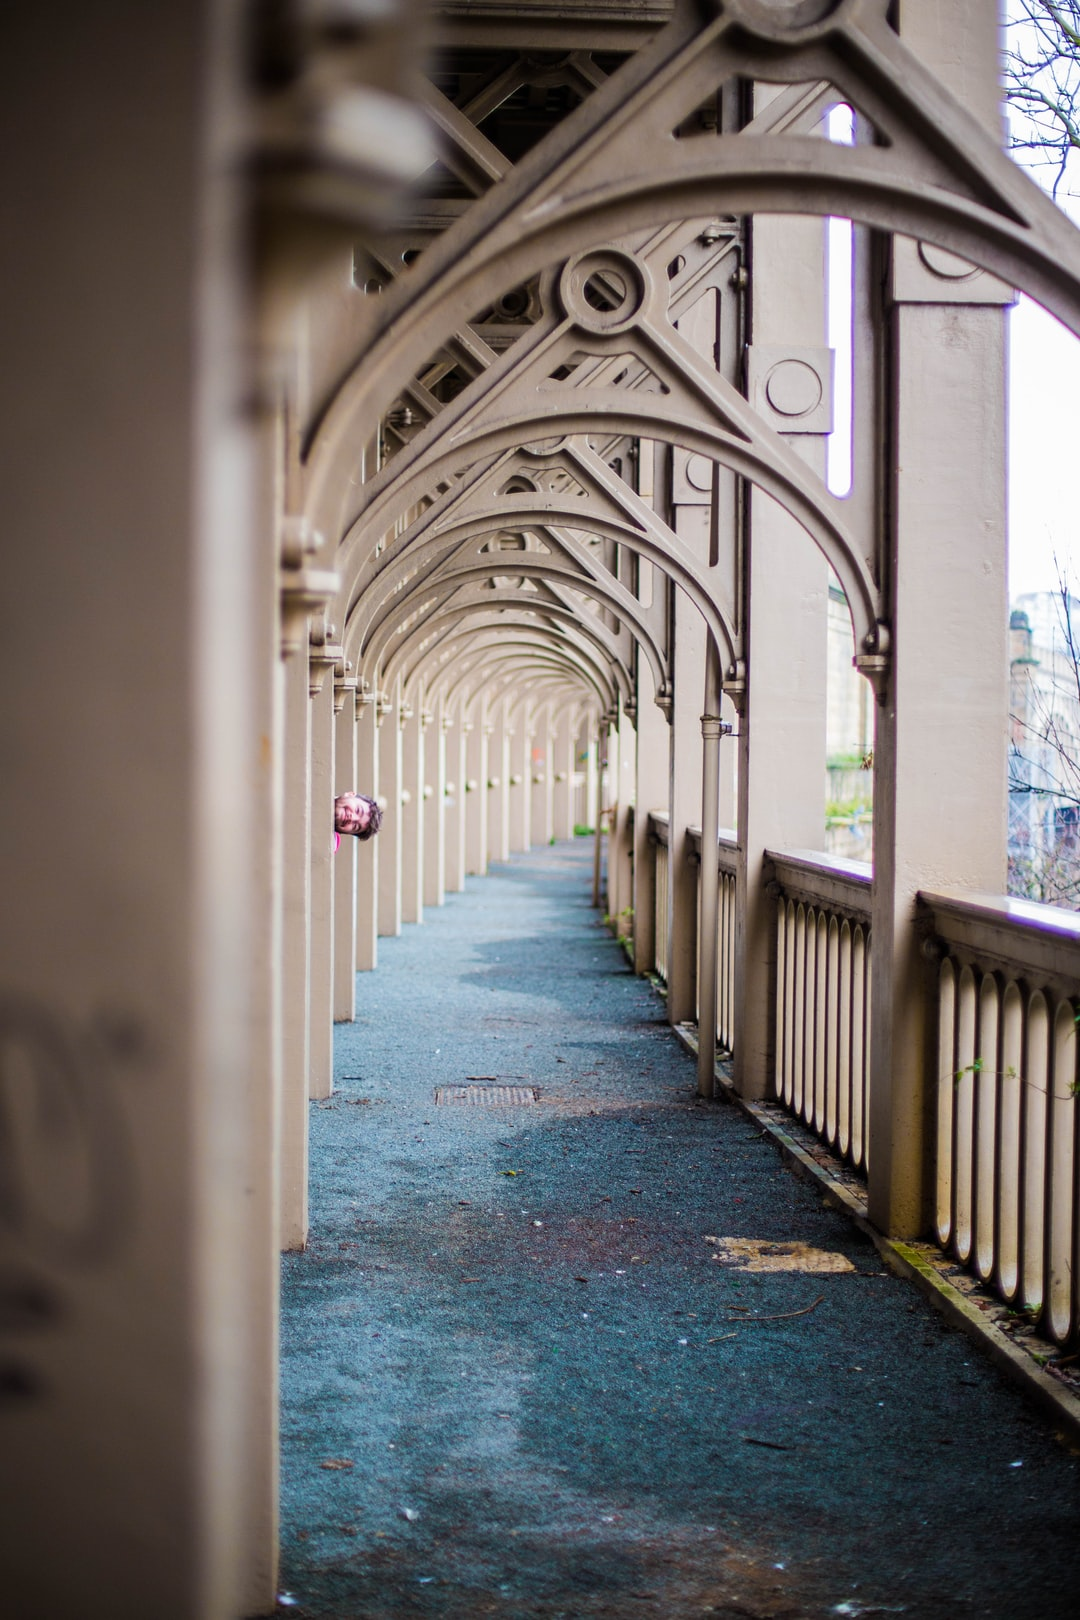 I was walking through this tunnel on the High-Level Bridge in Newcastle when all of a sudden this face popped out from behind one of the pillars.